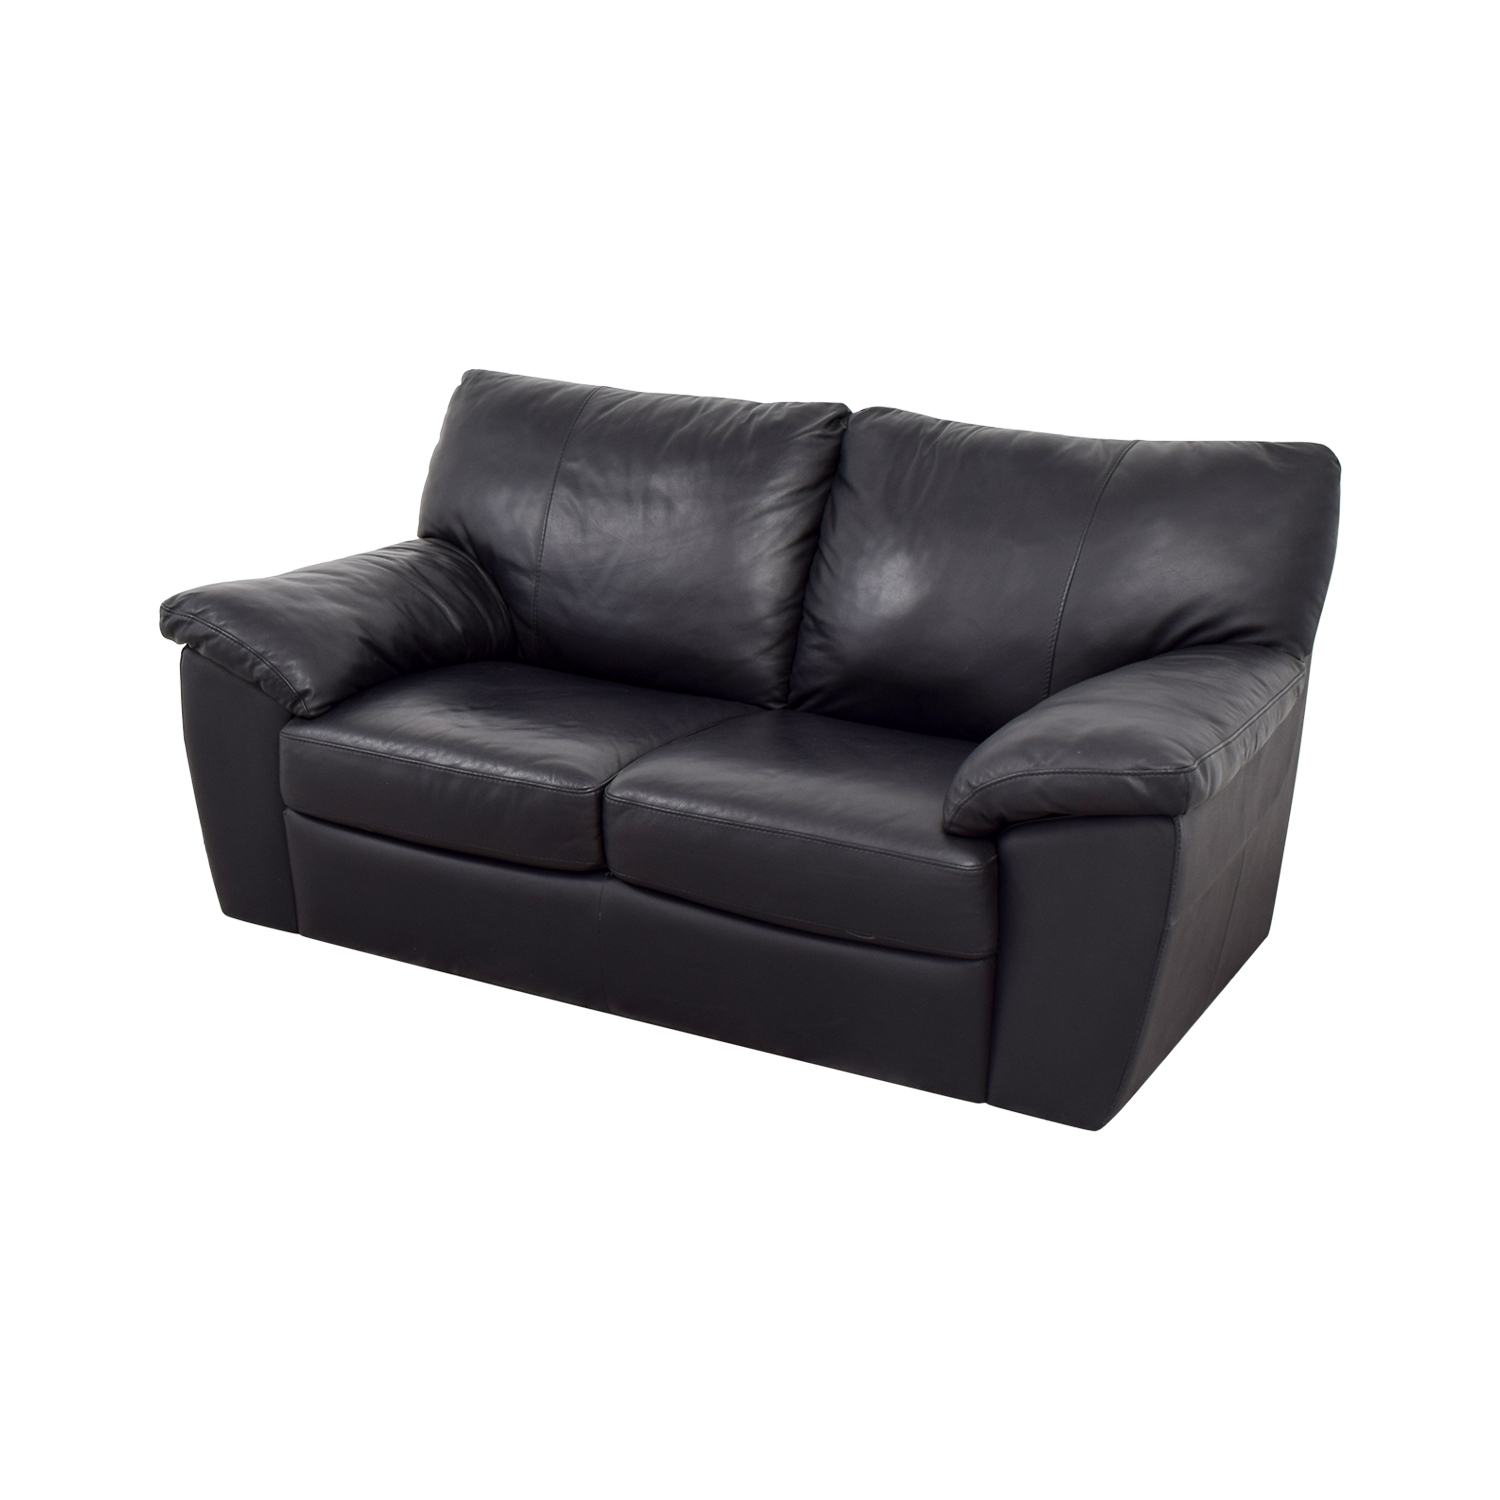 Awesome 81 Off Ikea Ikea Black Leather Two Cushion Couch Sofas Onthecornerstone Fun Painted Chair Ideas Images Onthecornerstoneorg